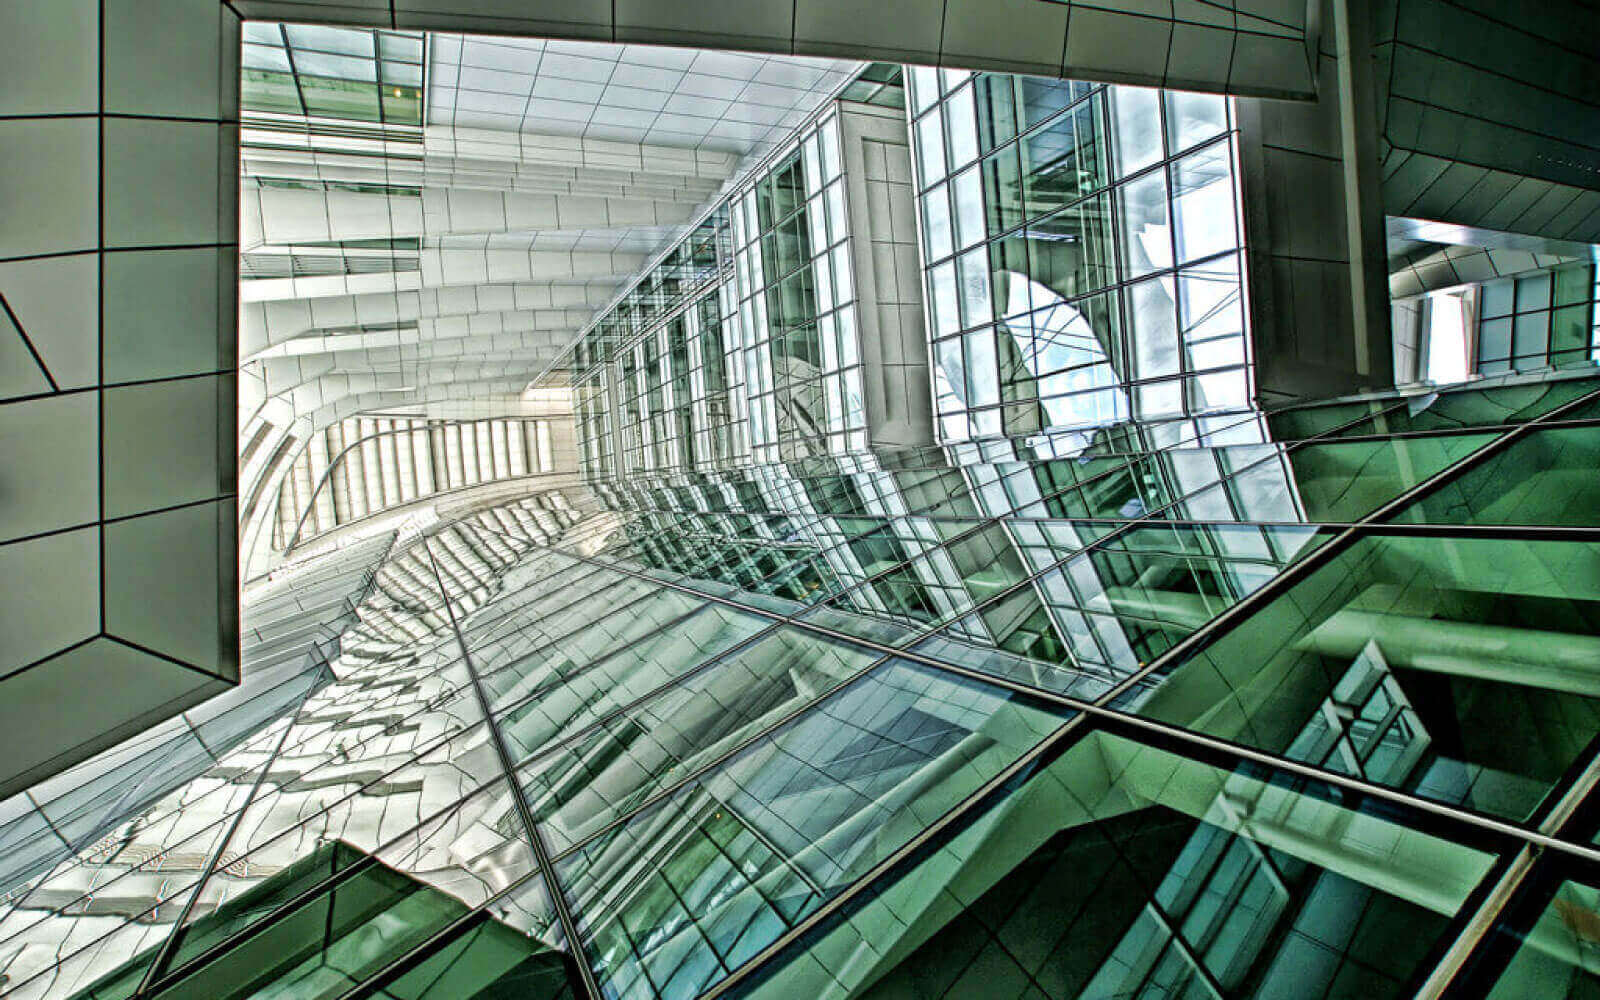 Image 2 for national Library Singapore green architect eco system